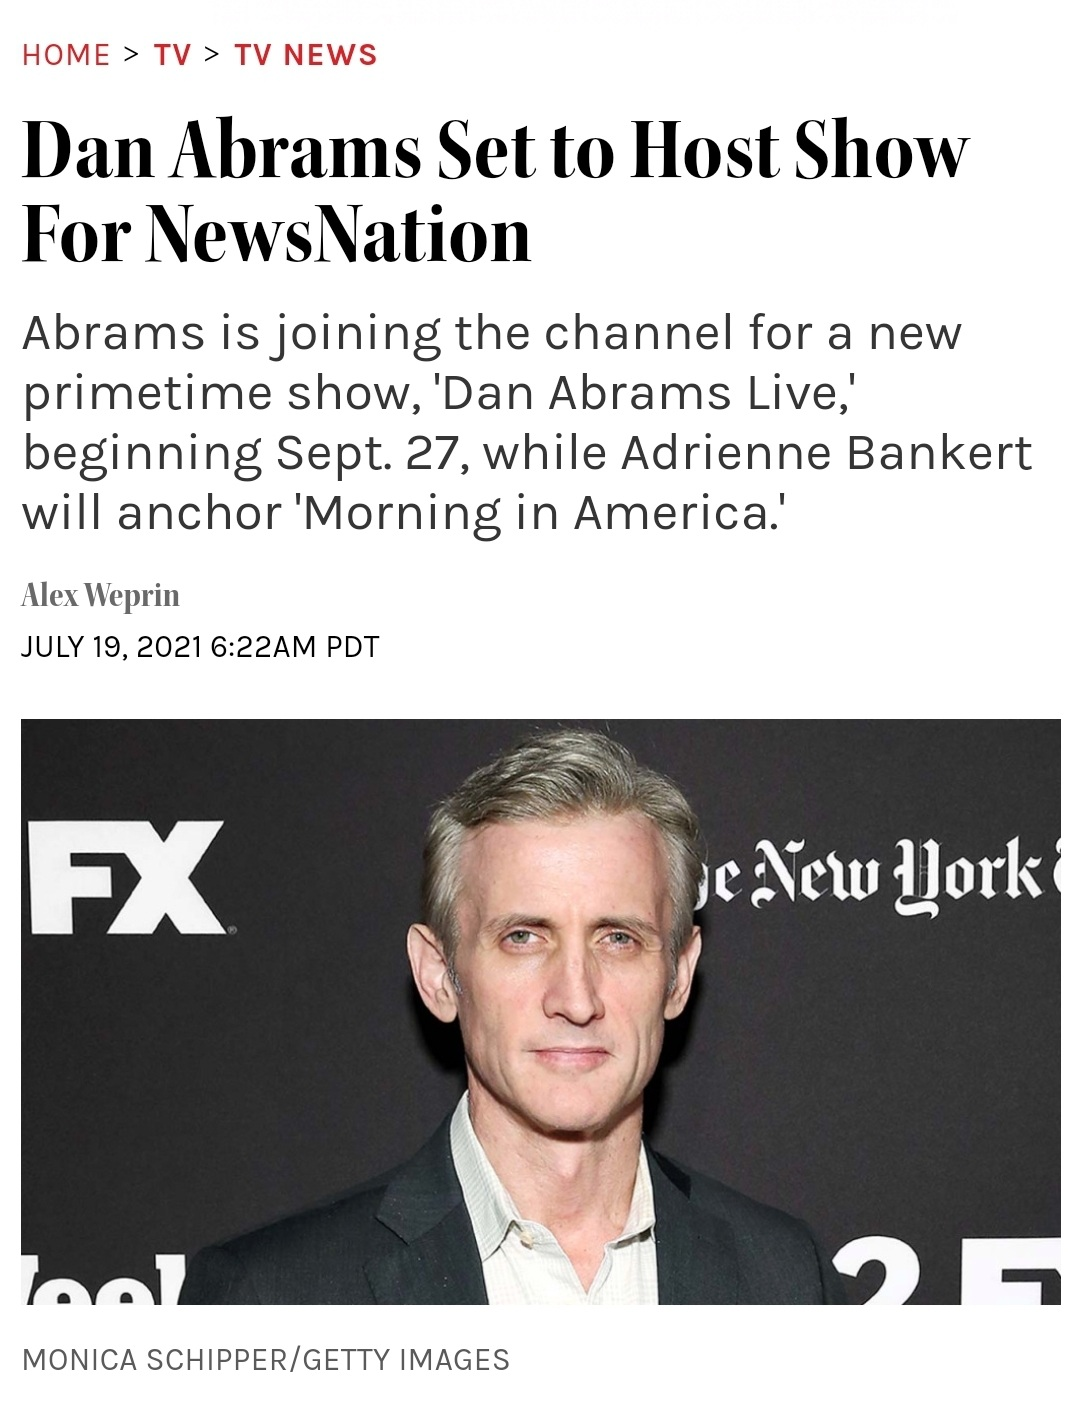 Dan Abrams Set to Host Nightly News Show on NewsNation